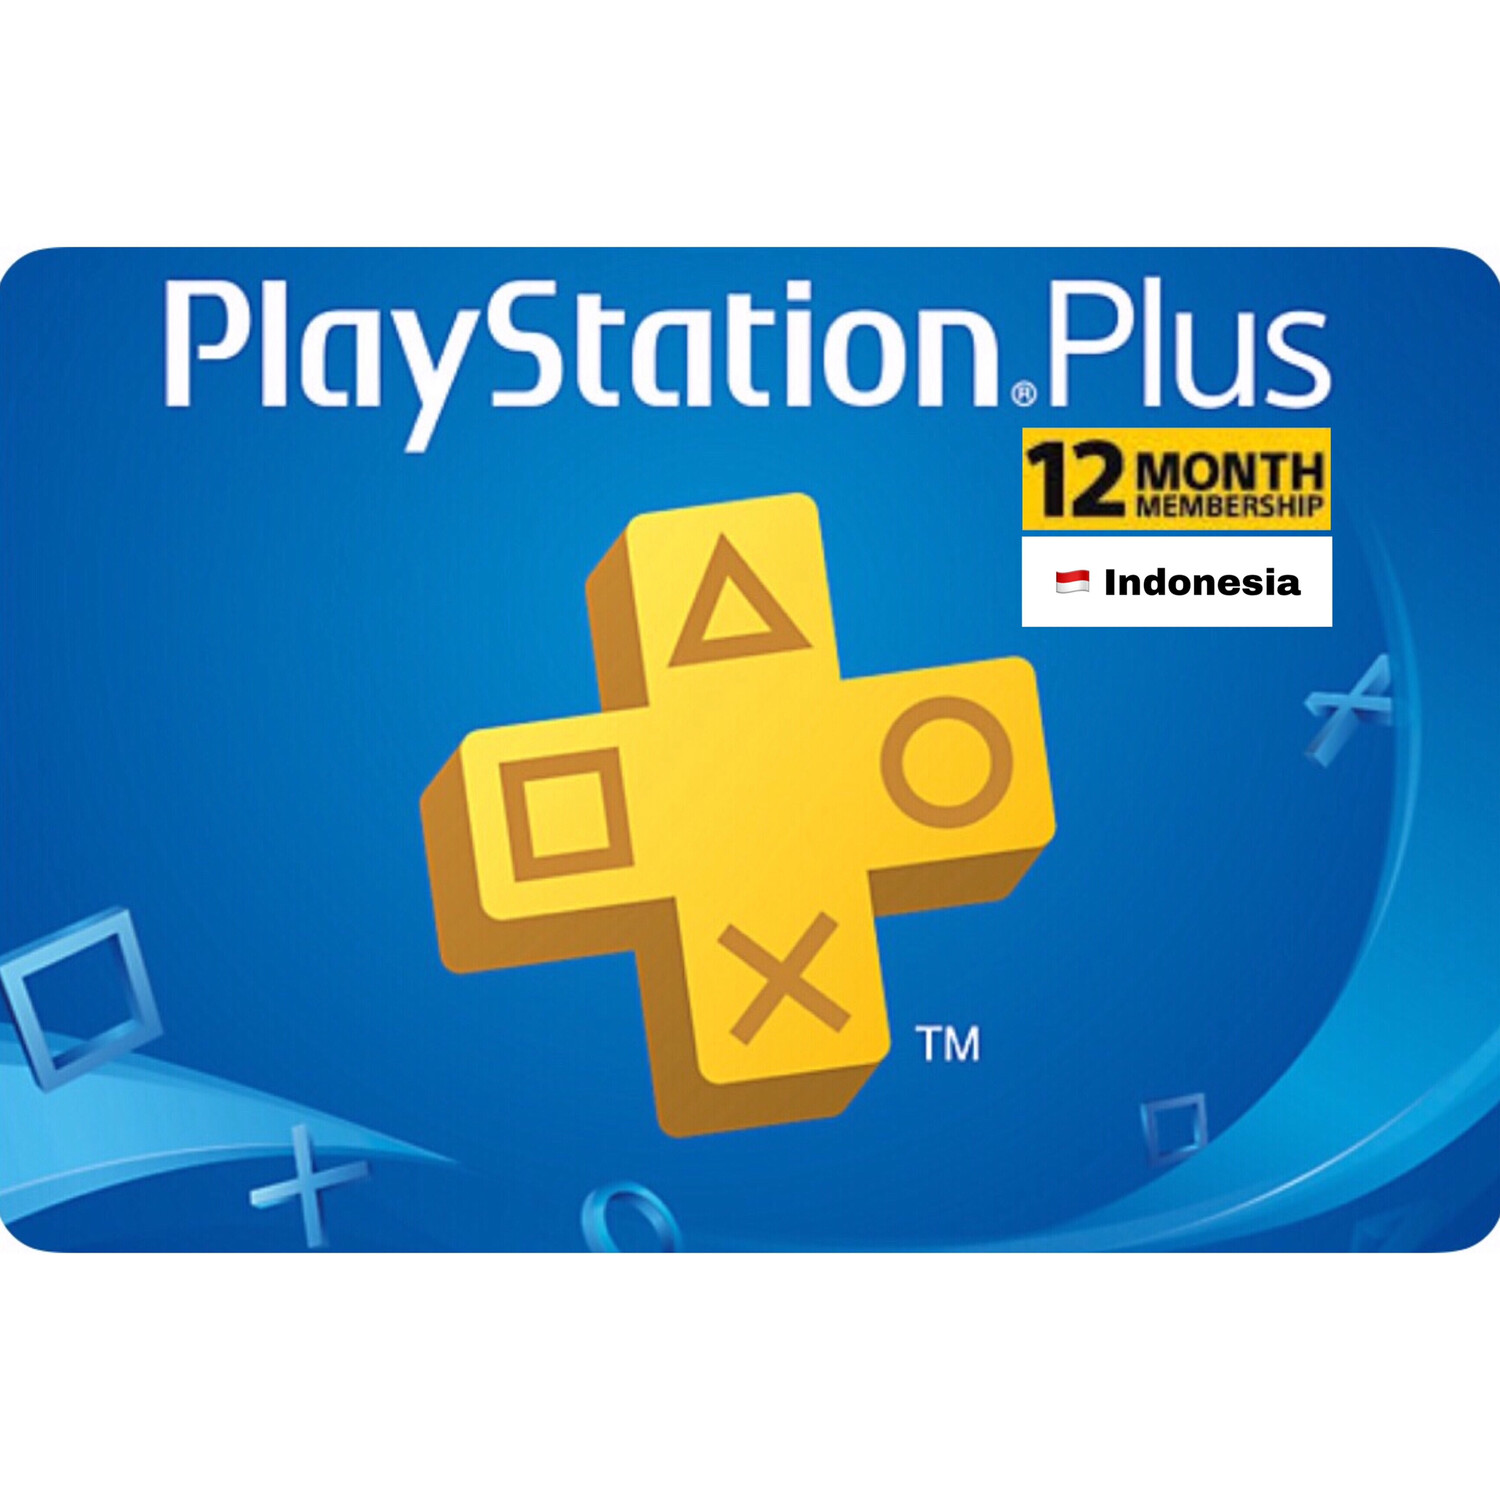 Playstation Plus (PSN Plus) Indonesia 12 Months